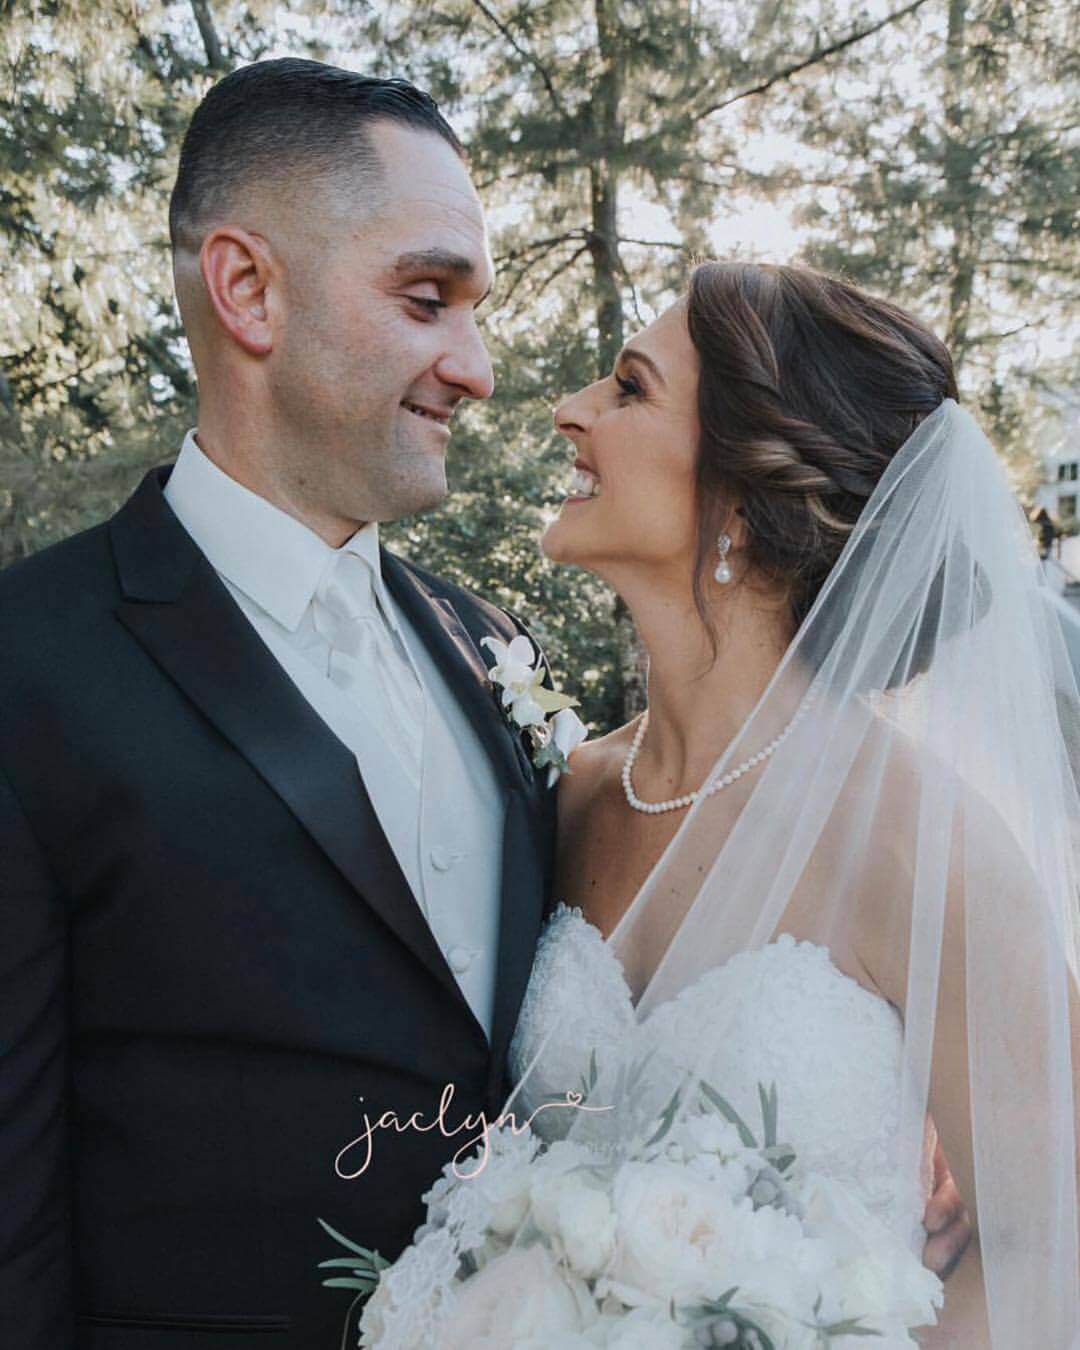 makeup-by-mehry-bridal-engagement-editorial-print-professional-makeup-course-artistry-occasion-wedding-runway-lessons-events-foxboro-12.jpg